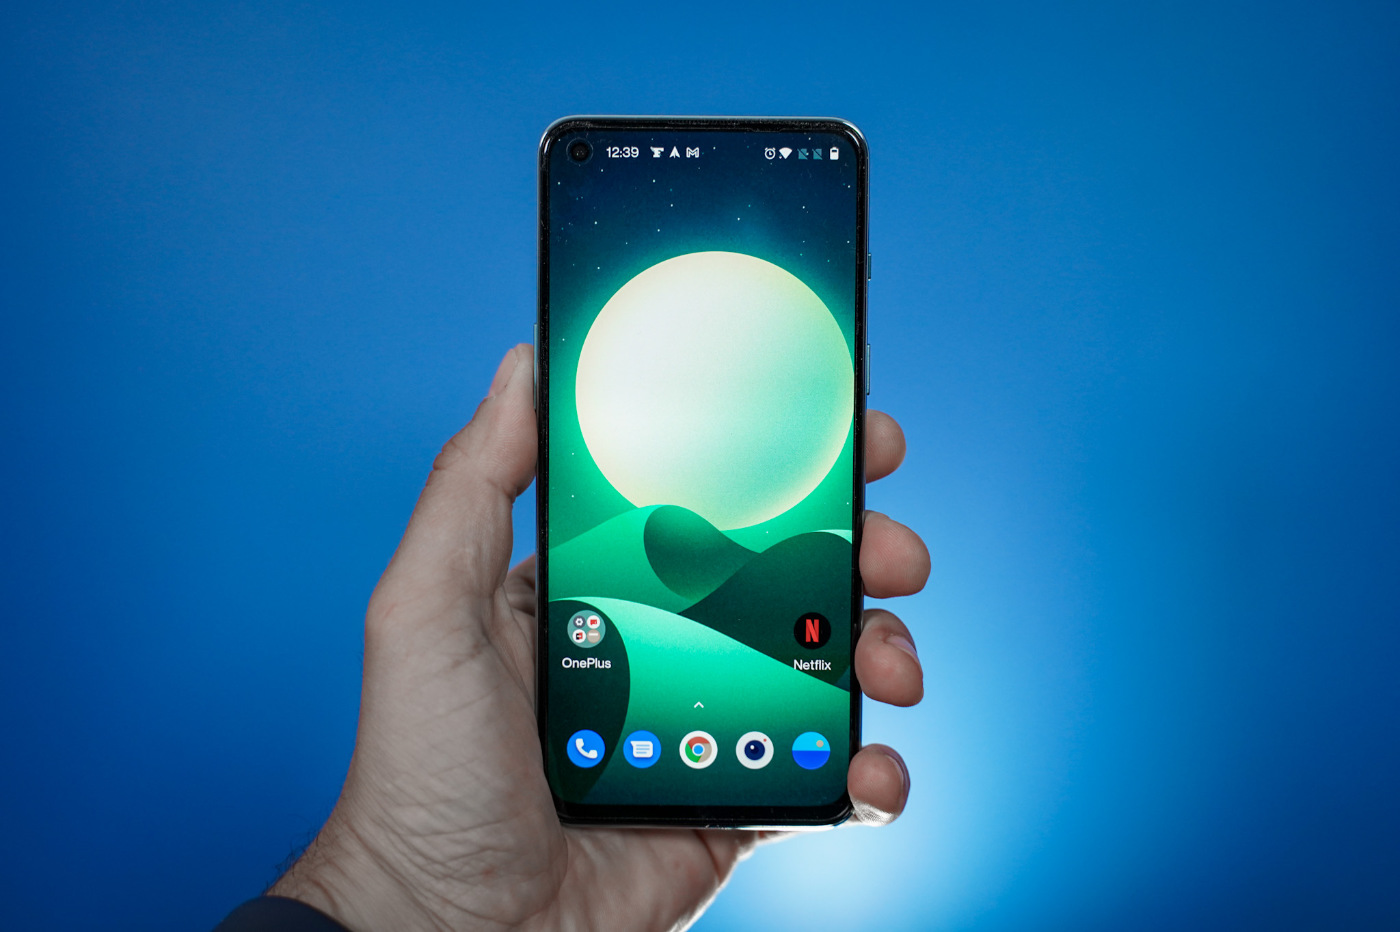 test oneplus nord 2 oxygen os